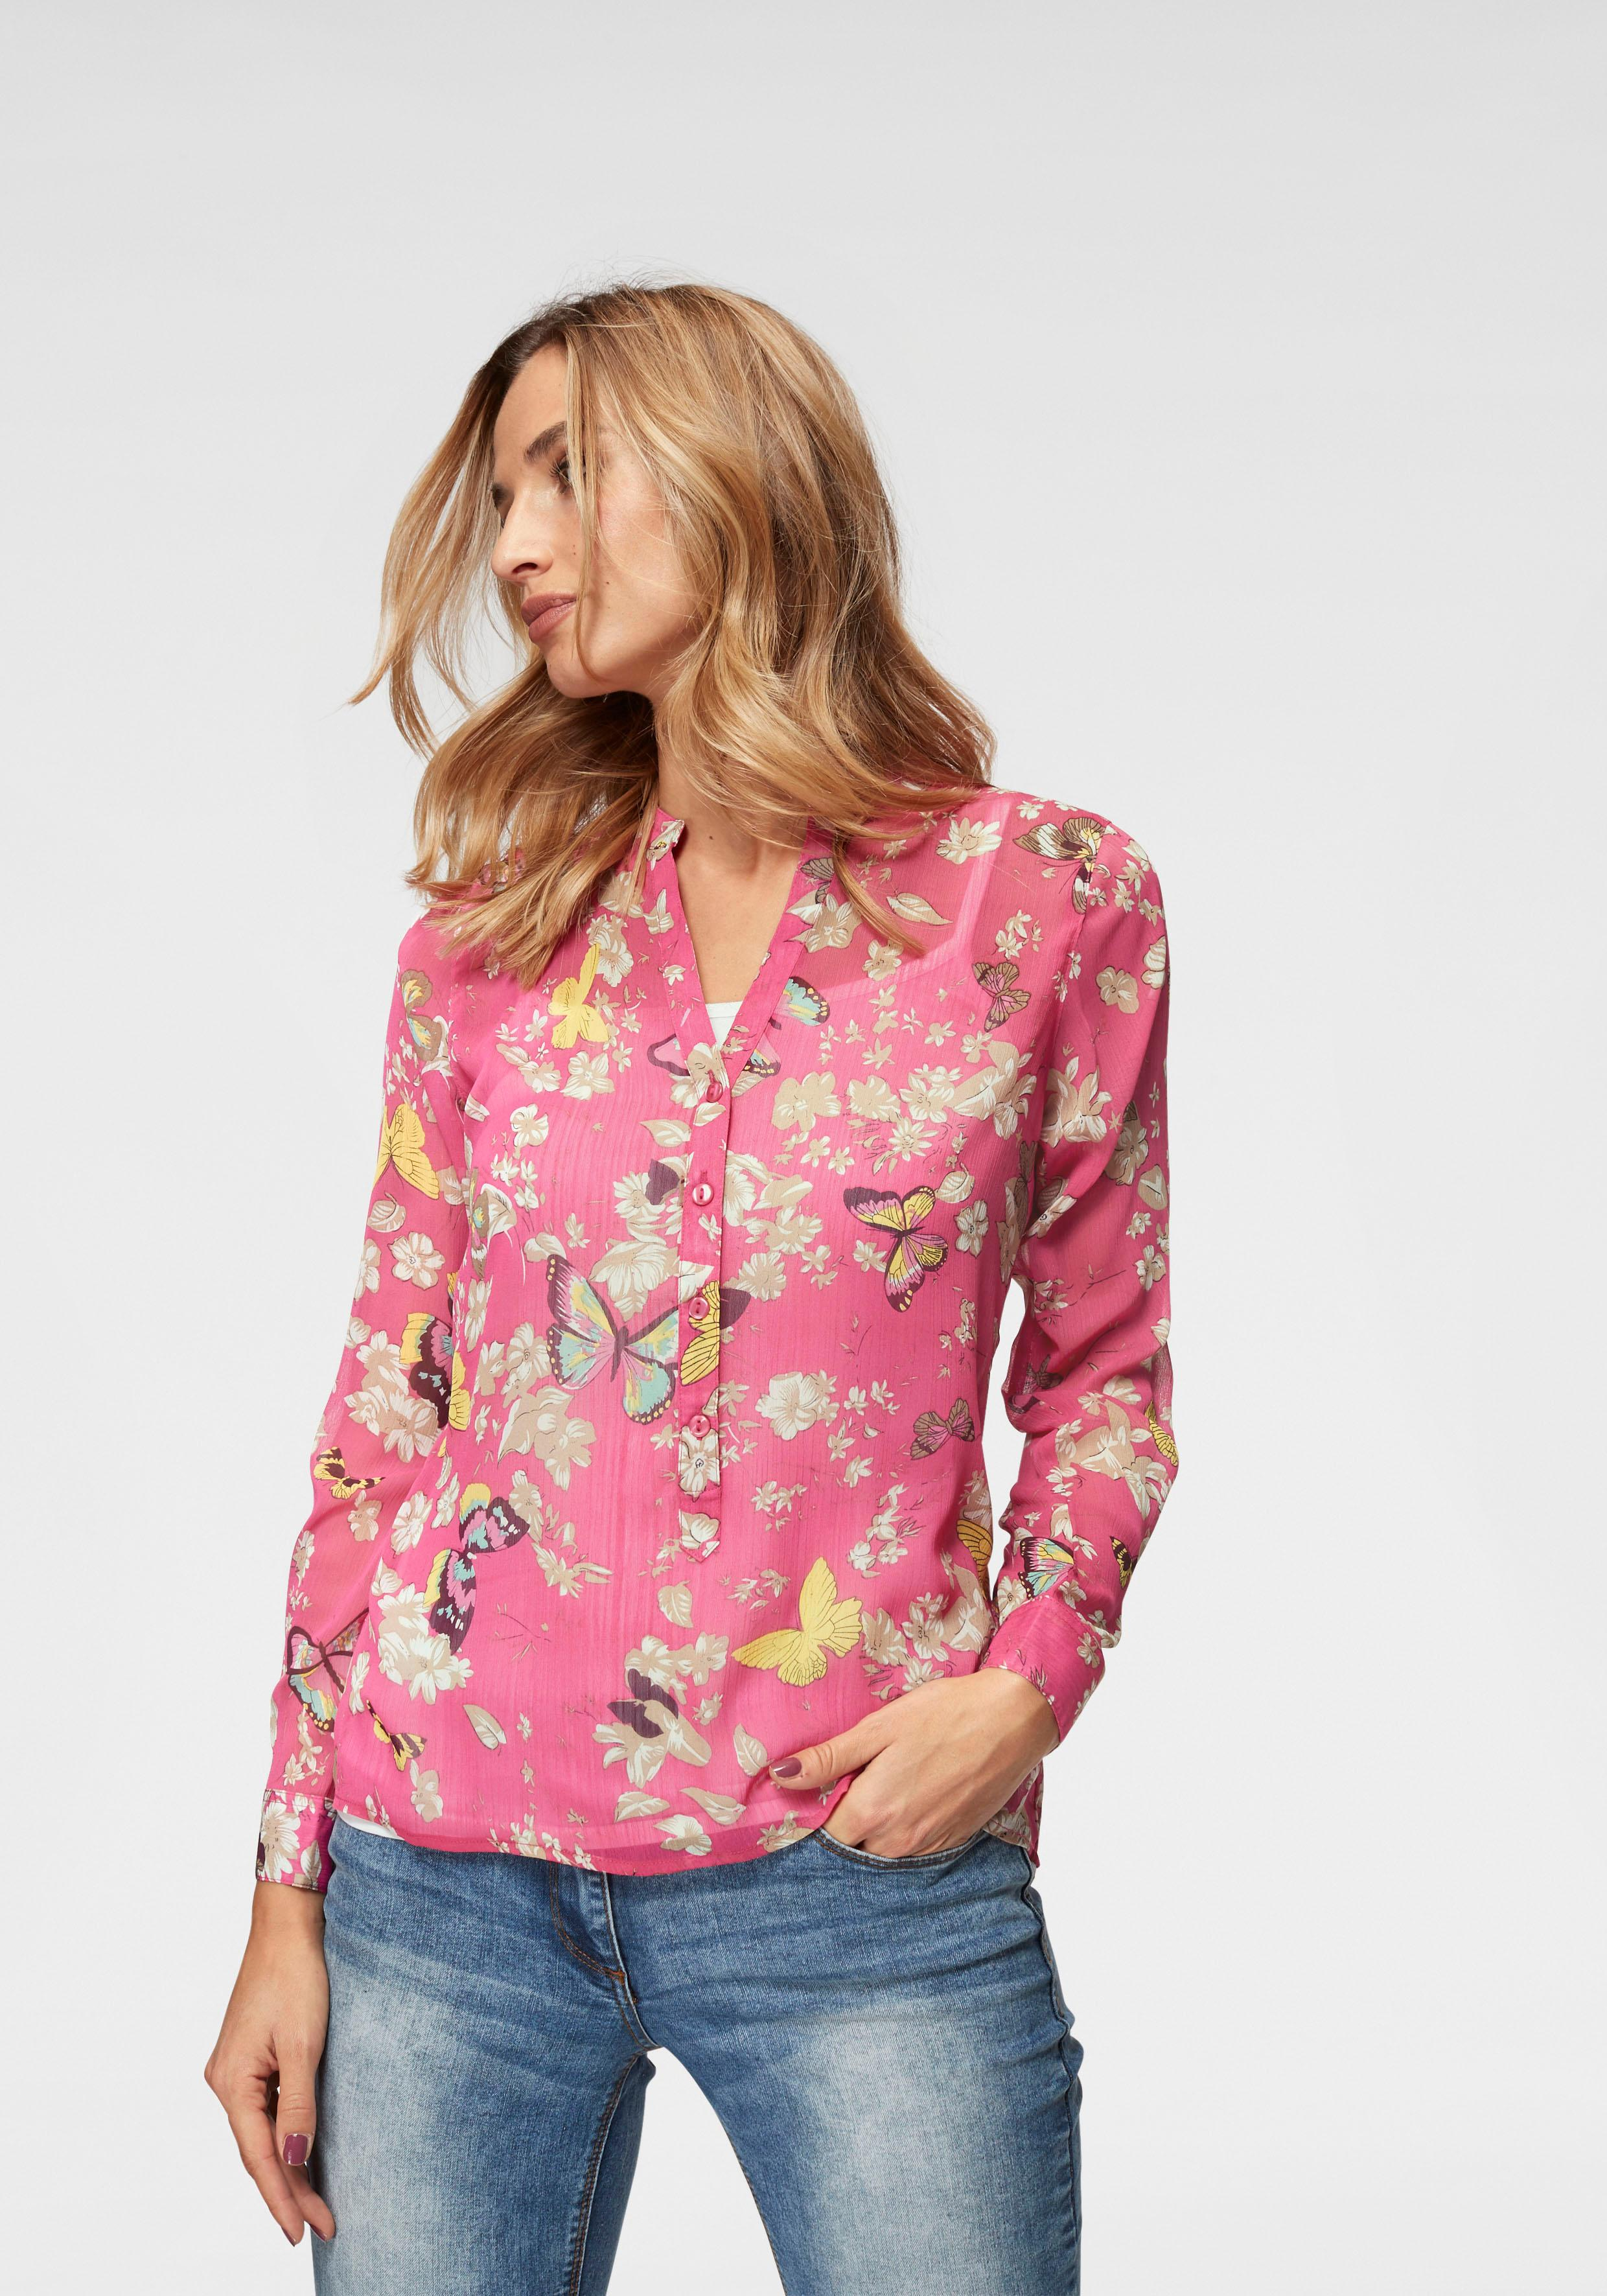 Image of Aniston CASUAL Chiffonbluse